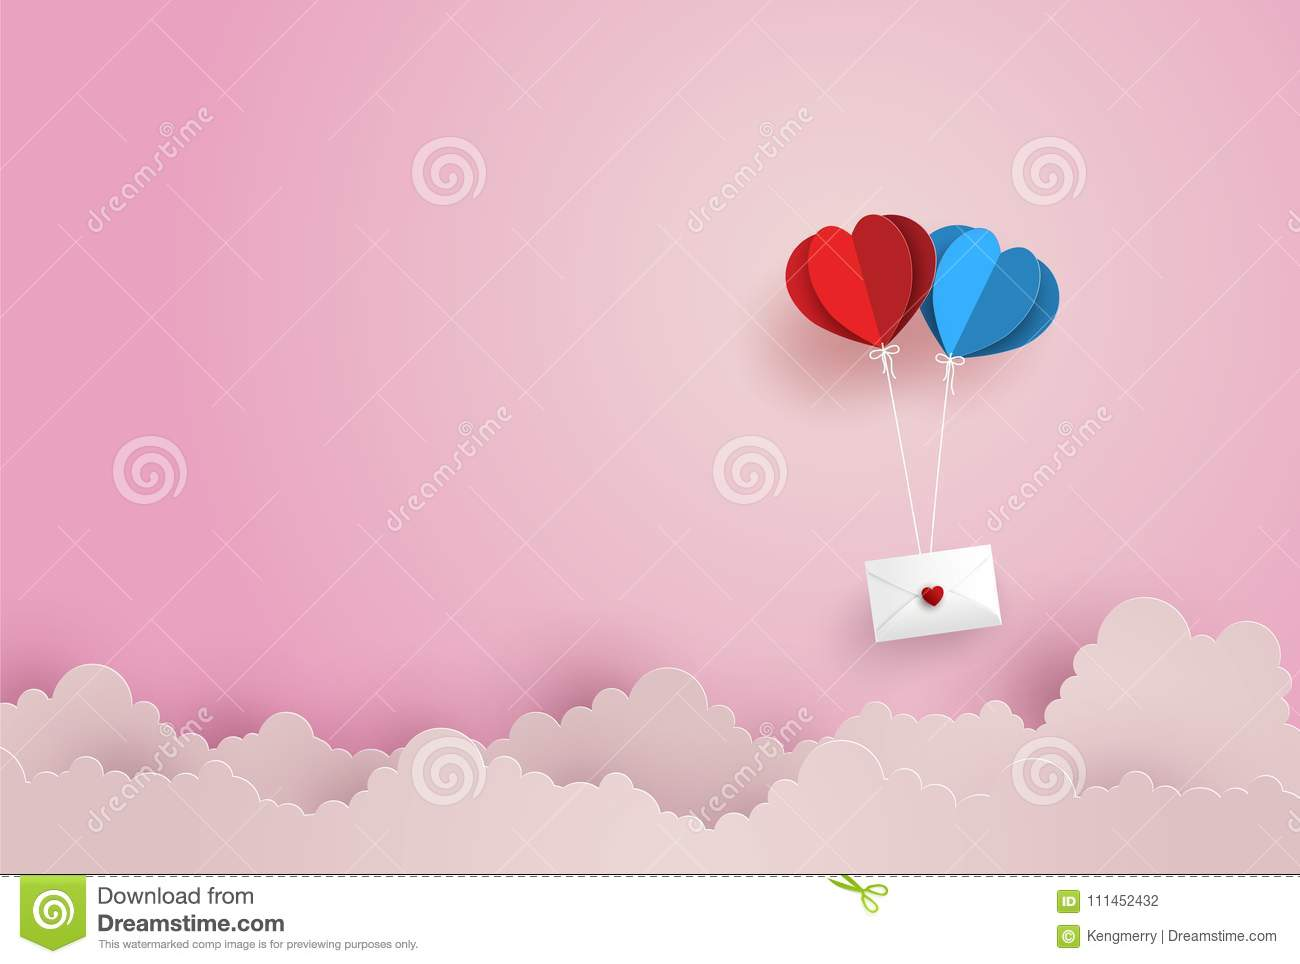 Illustration of Love and Valentine Day,twin paper hot air balloon heart shape hang envelope floating on the sky.